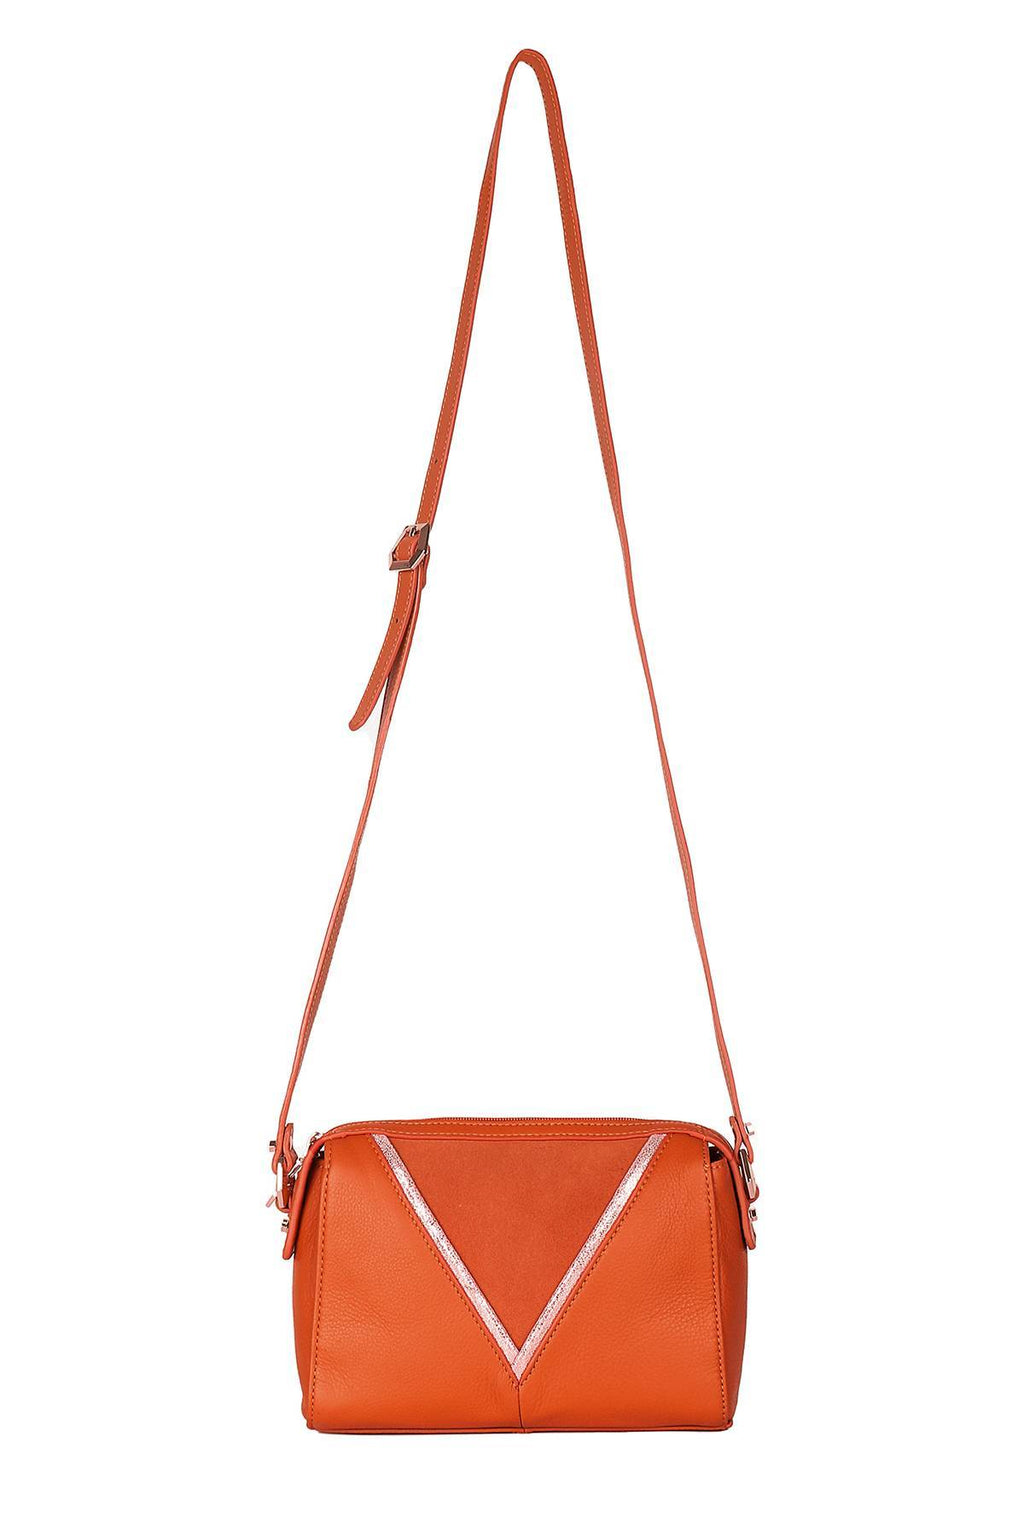 Cherry Paris - Elisabeth crossbody bag orange